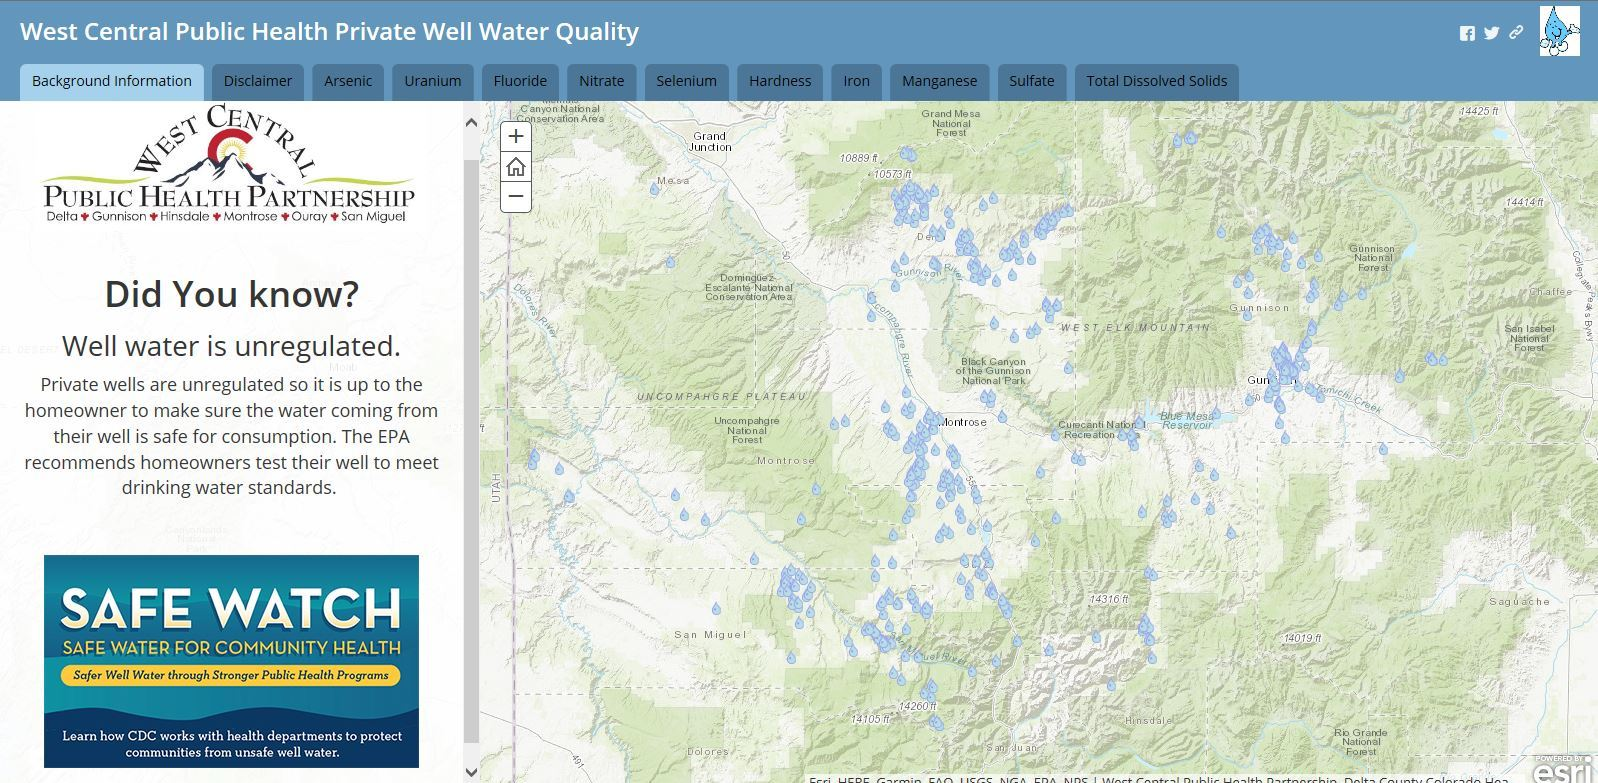 Well Water Quality Map